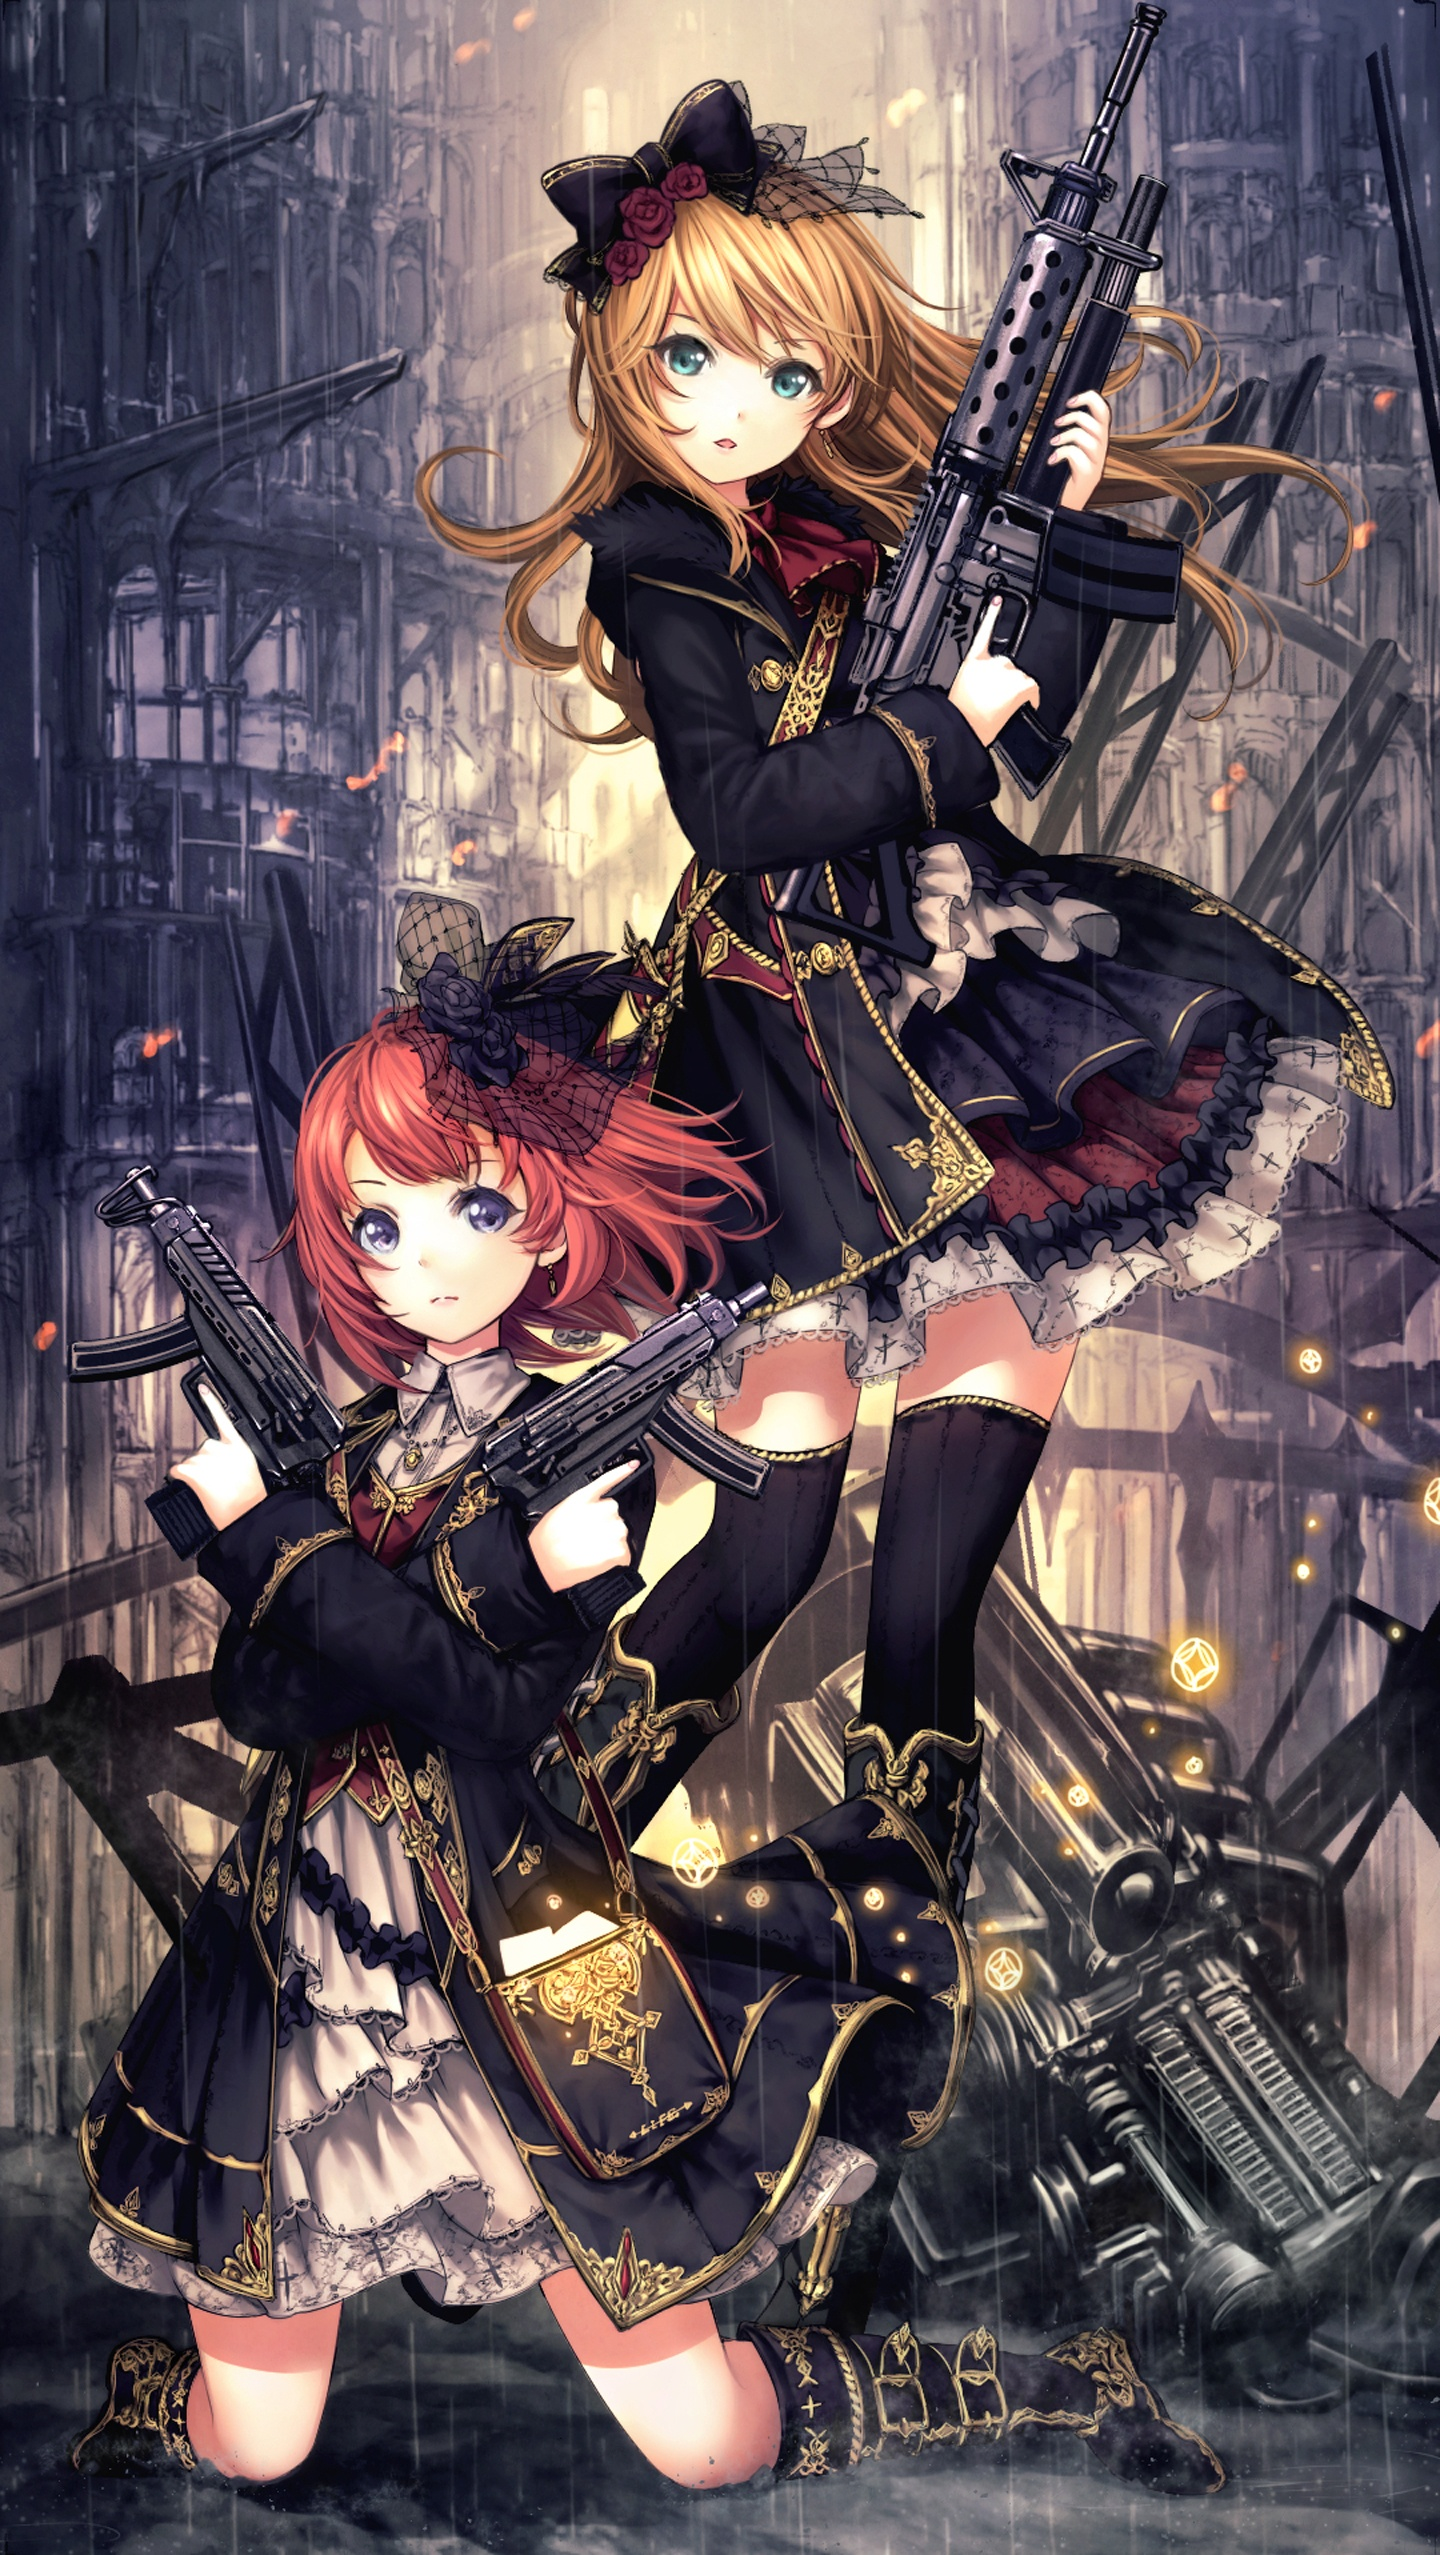 Anime girls weapon dress cute wallpaper 1440x2555 - Anime girl with weapon ...